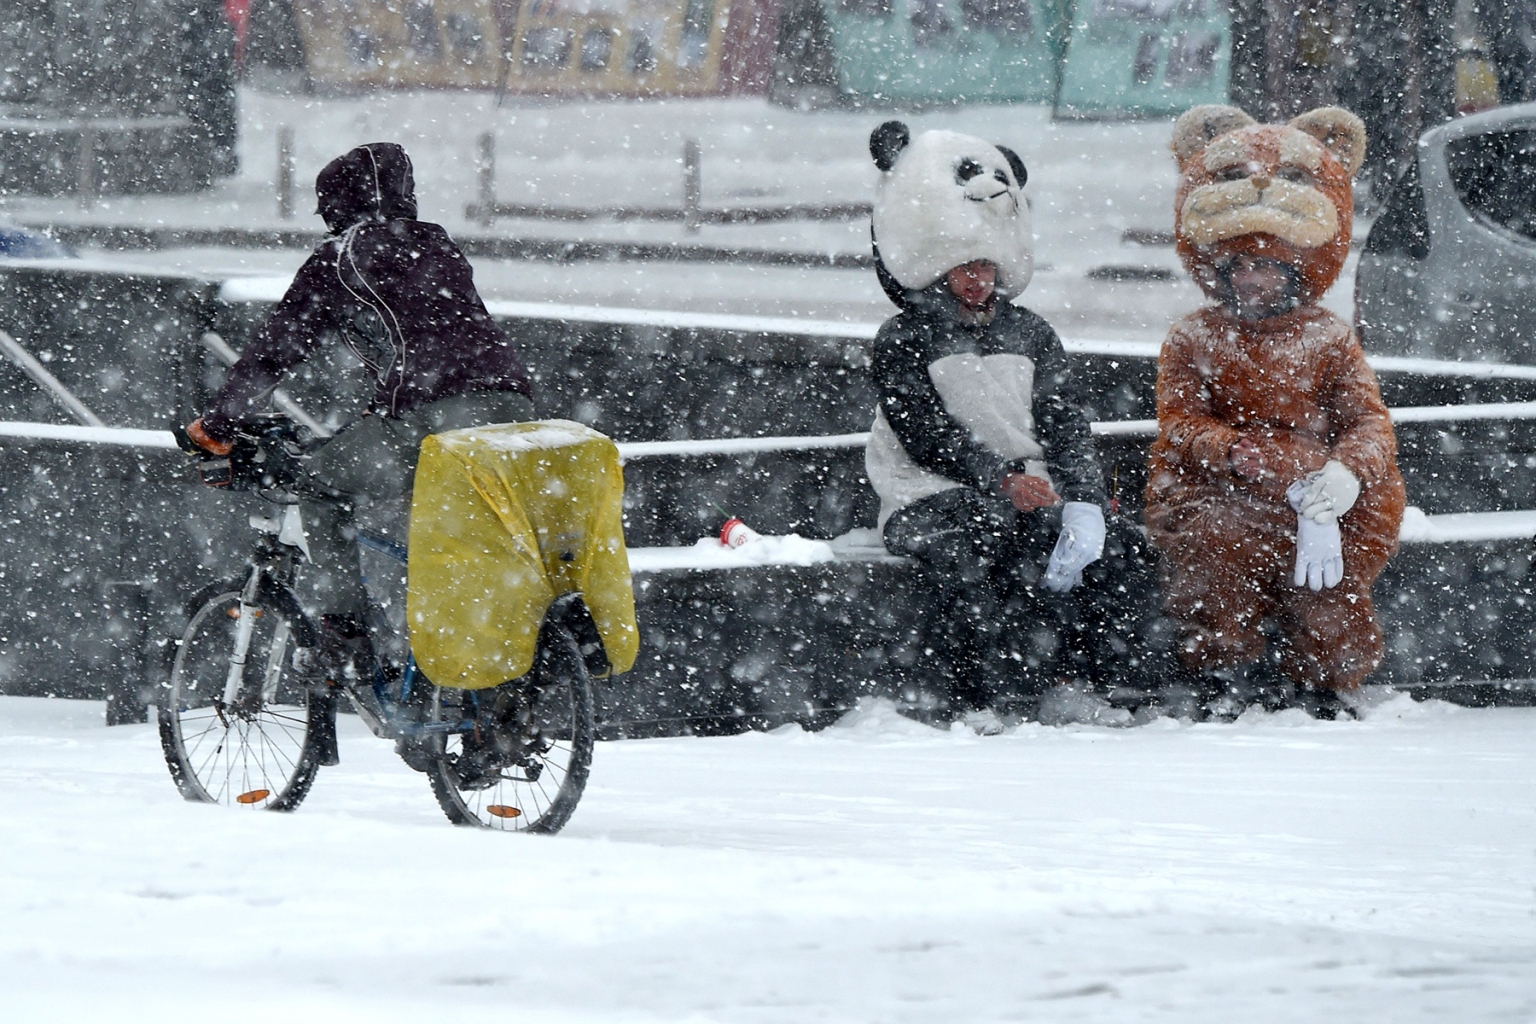 A cyslist rides past people wearing animal costumes during heavy snowfall, the first in the autumn, in the center of Kiev, Ukraine, on Nov. 14. SERGEI SUPINSKY/AFP/Getty Images